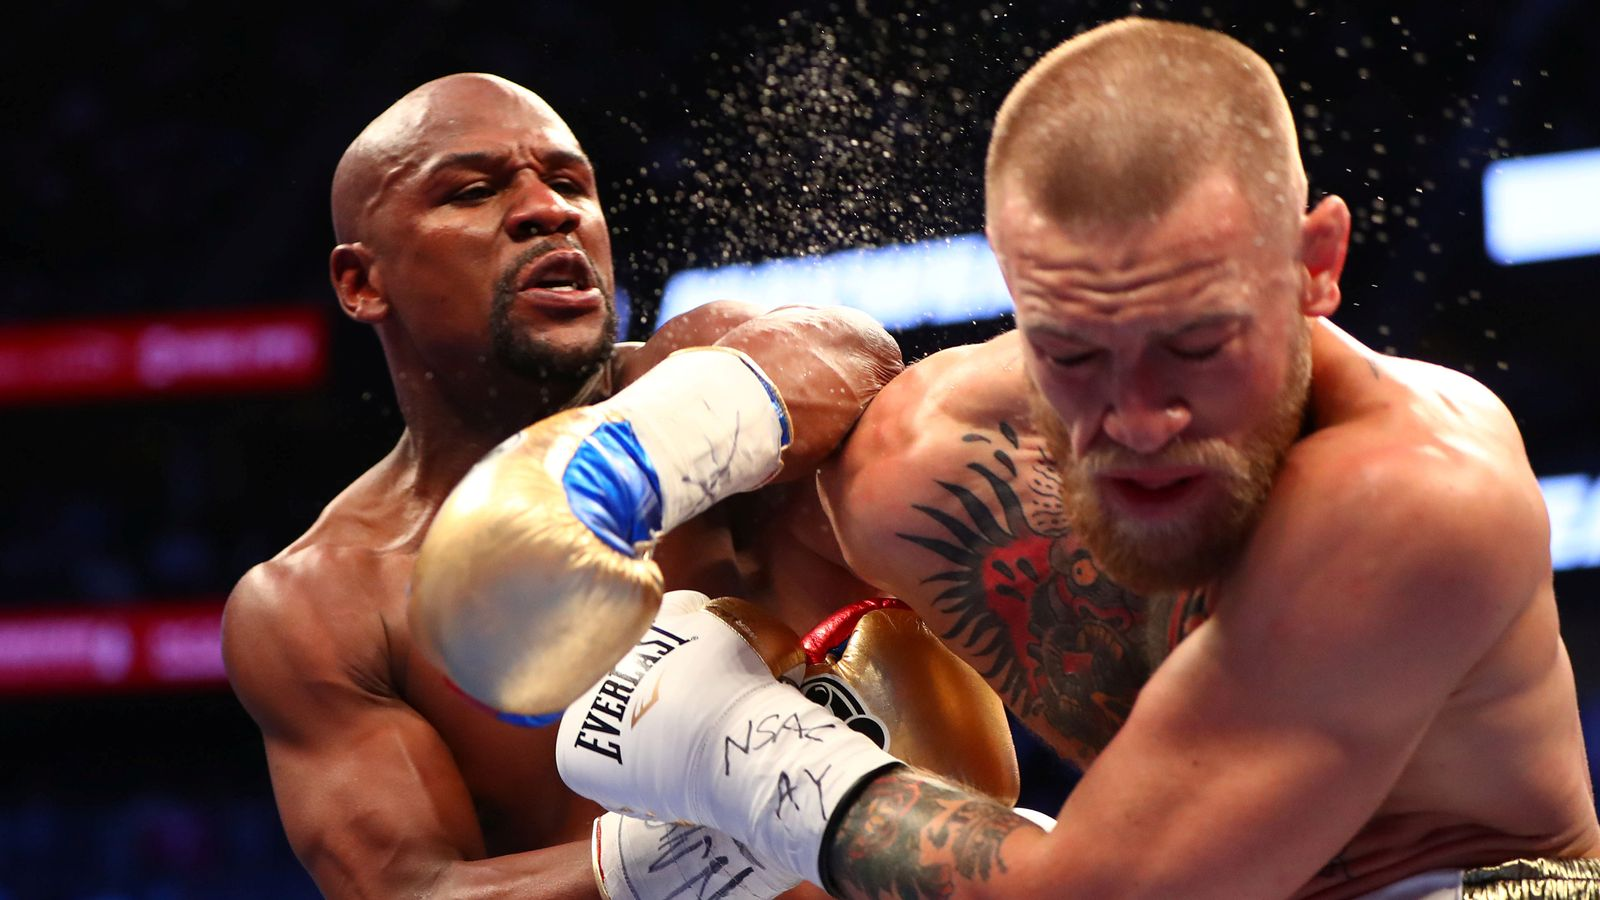 Mayweather lands a stinging shot on his Irish opponent